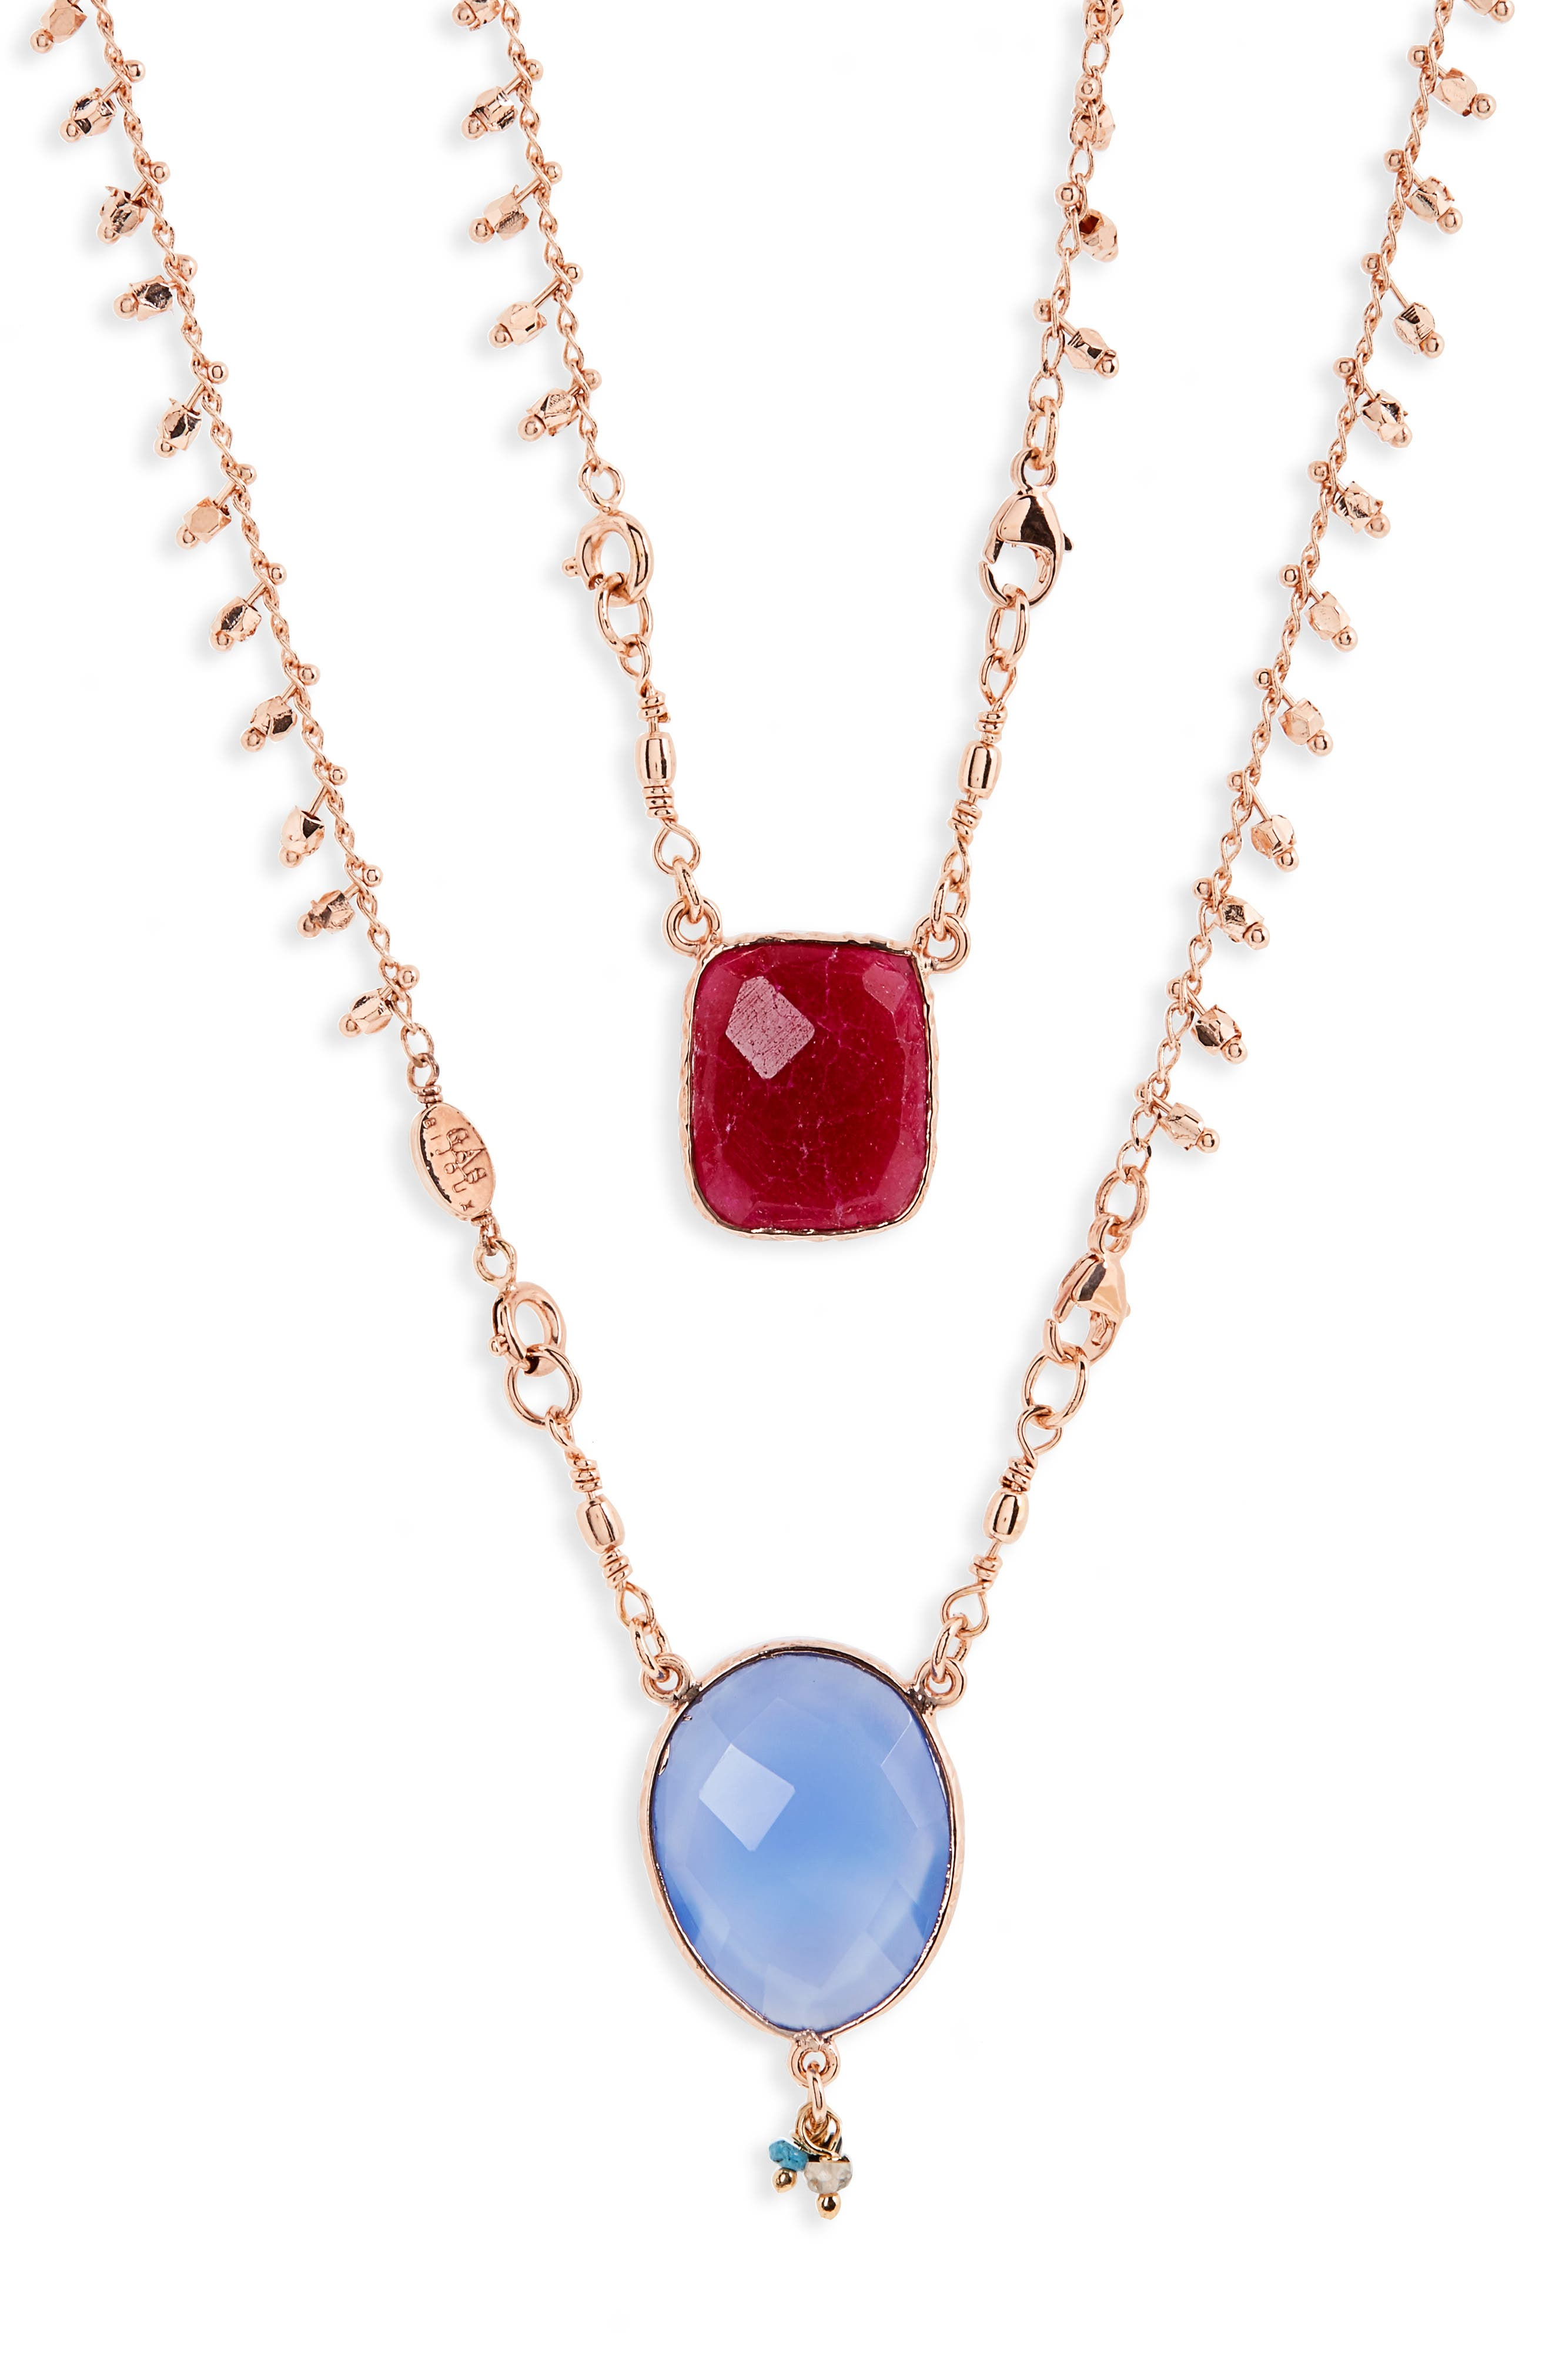 Alternate Image 1 Selected - Gas Bijoux Scapulaire Convertible Semiprecious Stone Necklace